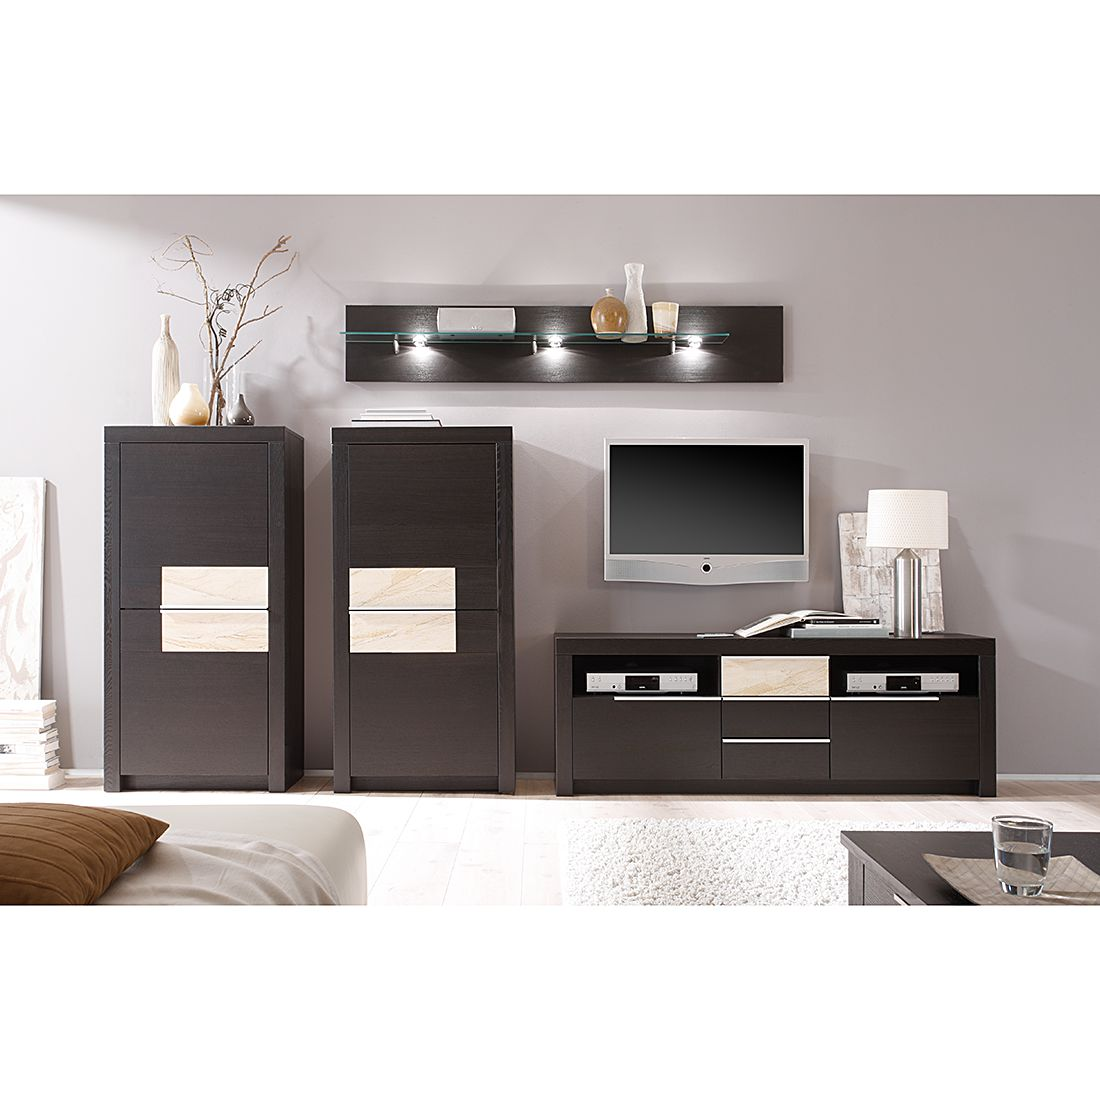 porta wohnwand canberra interessante ideen f r die gestaltung eines raumes in. Black Bedroom Furniture Sets. Home Design Ideas